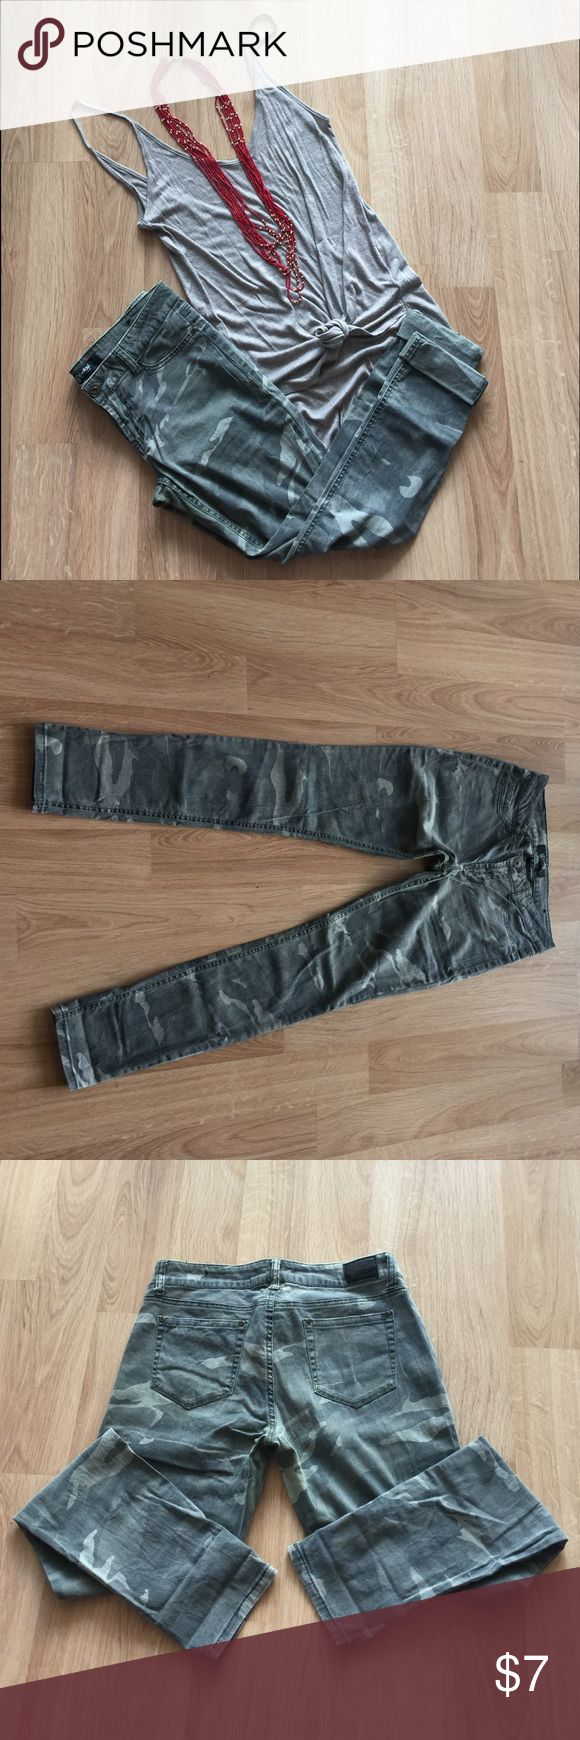 Camo skinny jeans. Camo skinny jeans with a more subtle toned pattern. 2% spandex so they have a little stretch, very comfortable! Wear with a plain tee or a button down and heels to dress it up! Rewash Pants Skinny